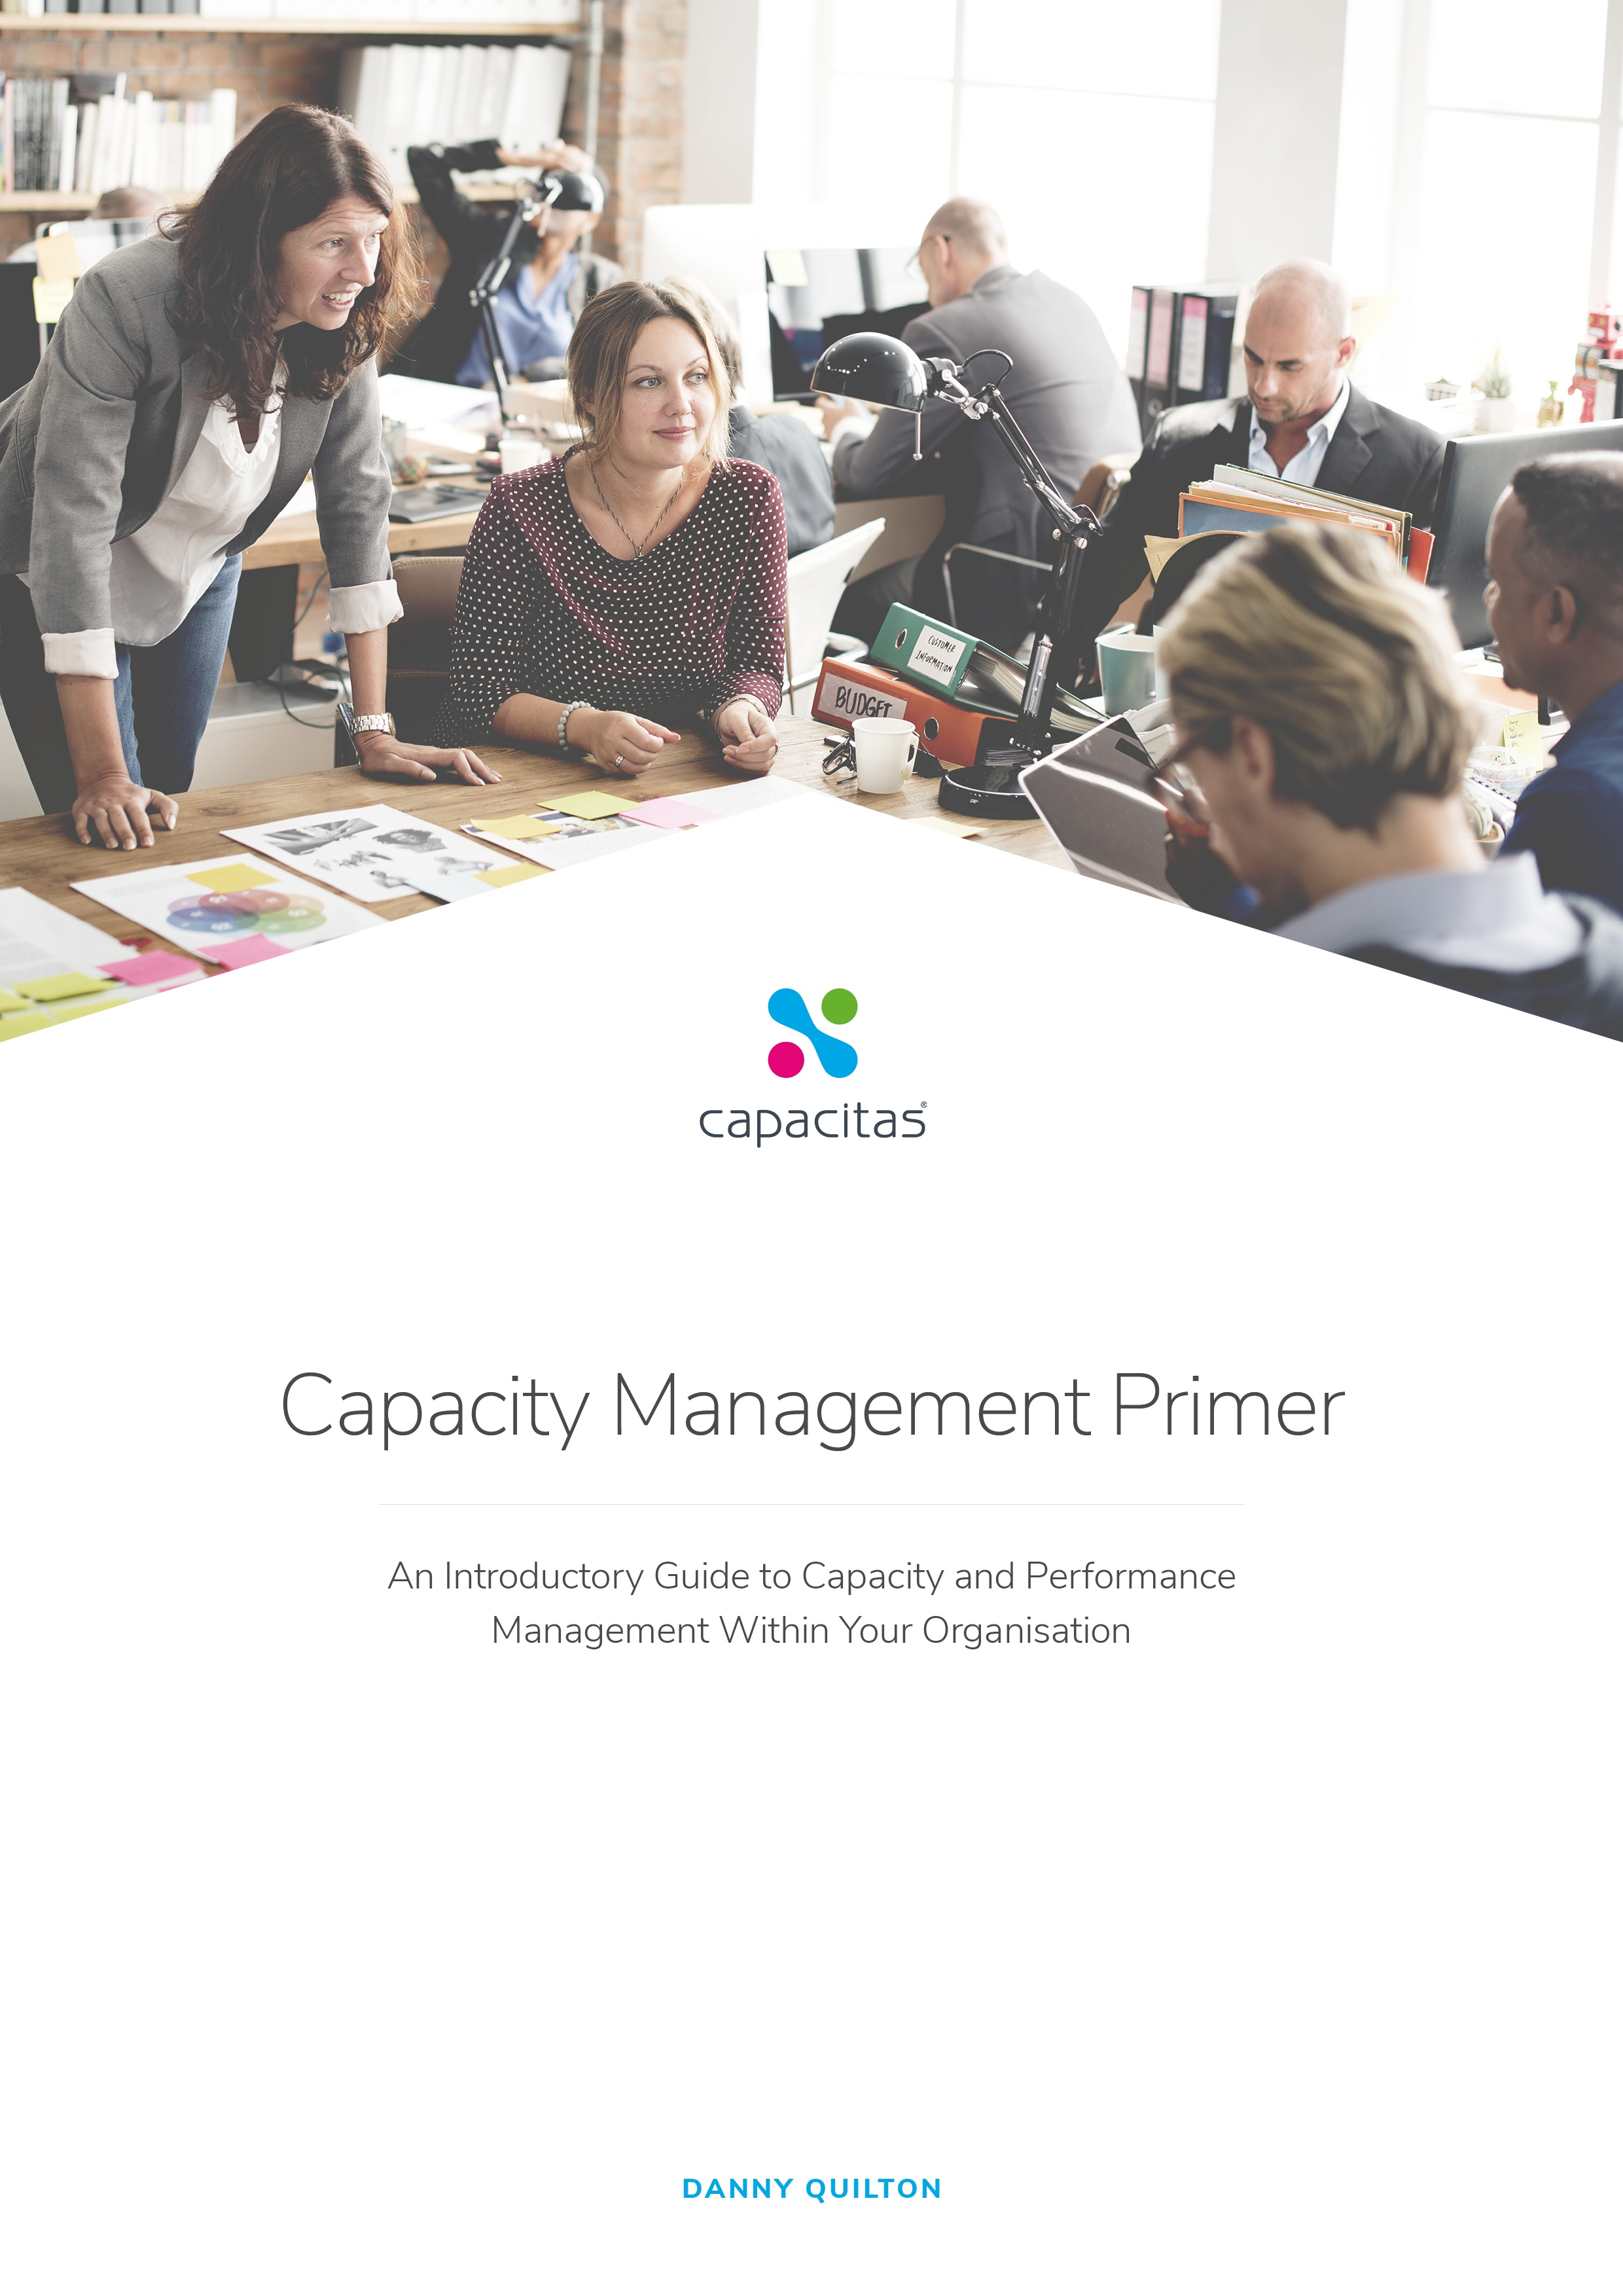 Capacity Management Primer